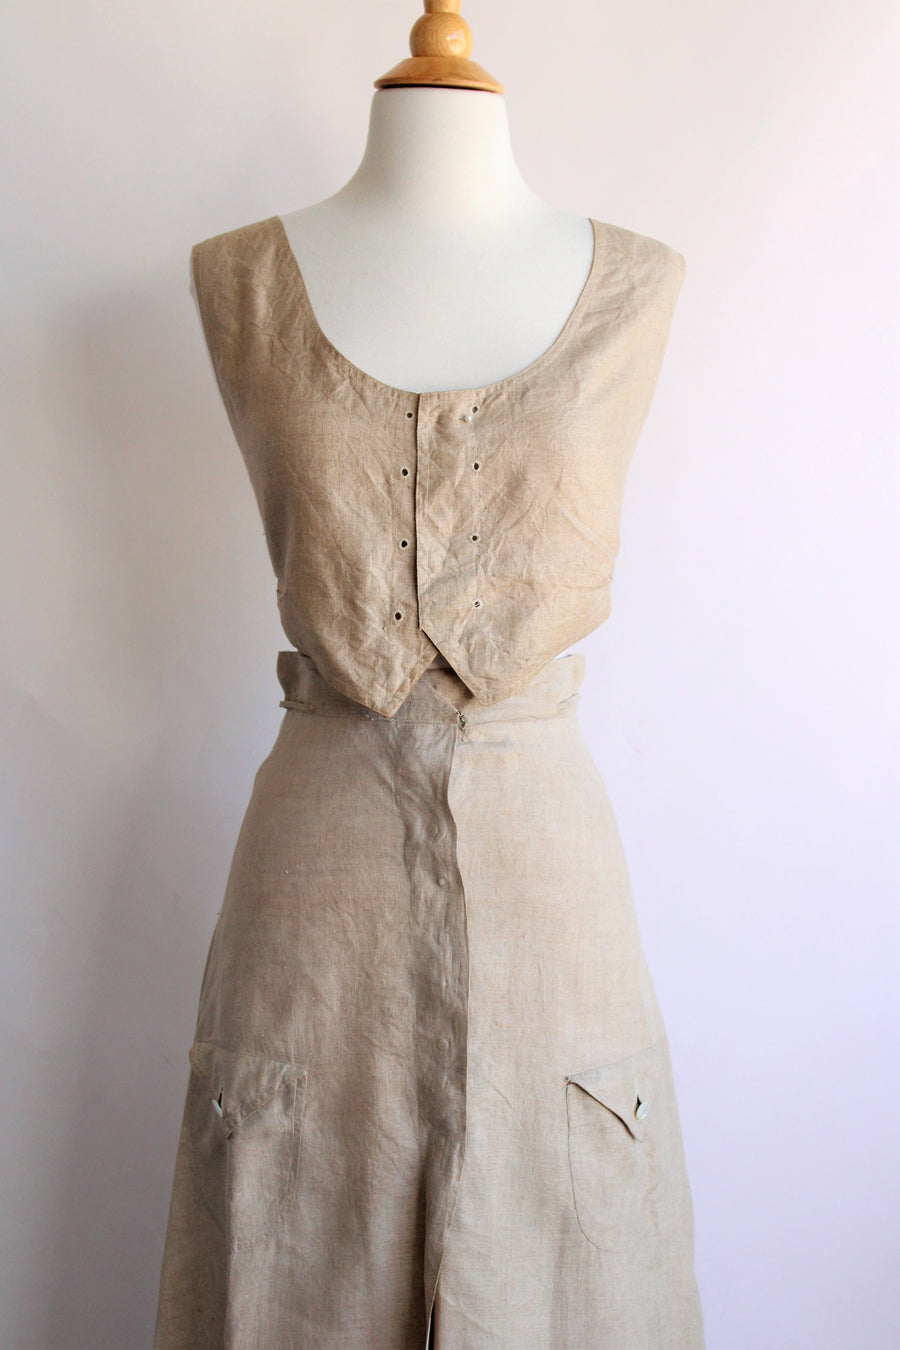 Antique 1910s Linen Skirt and Waistcoat